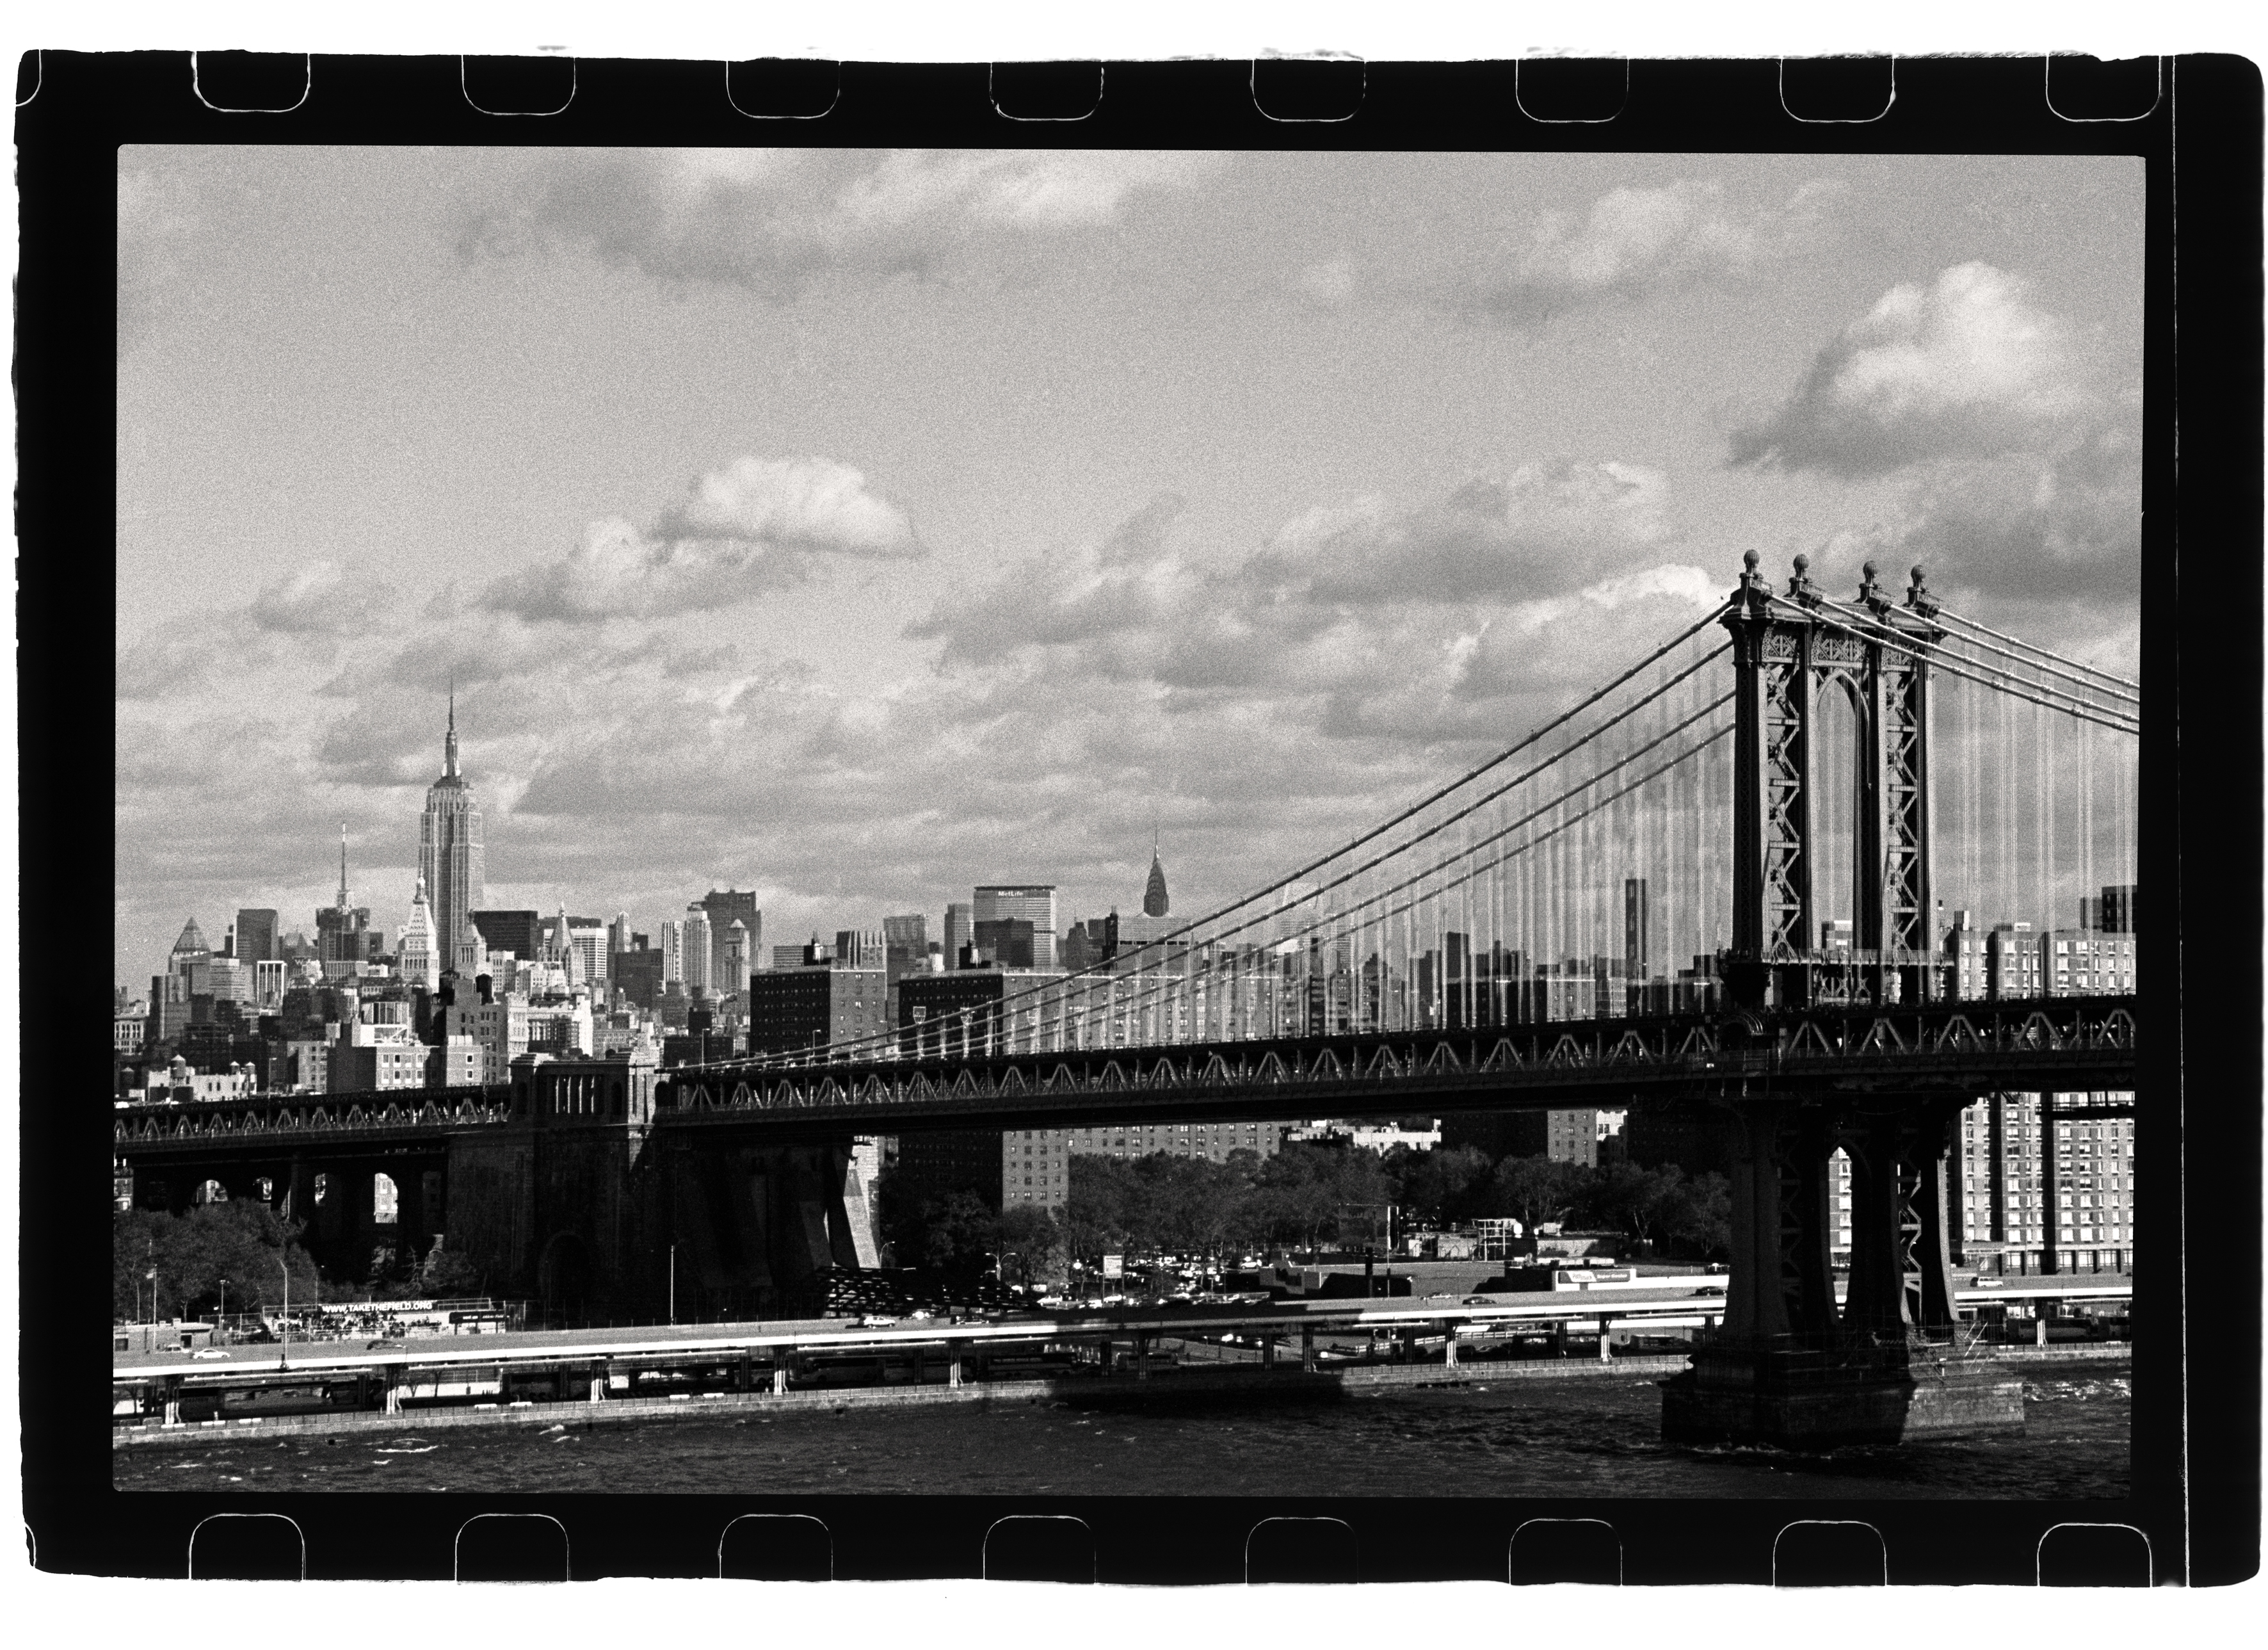 Finding the old New York - today